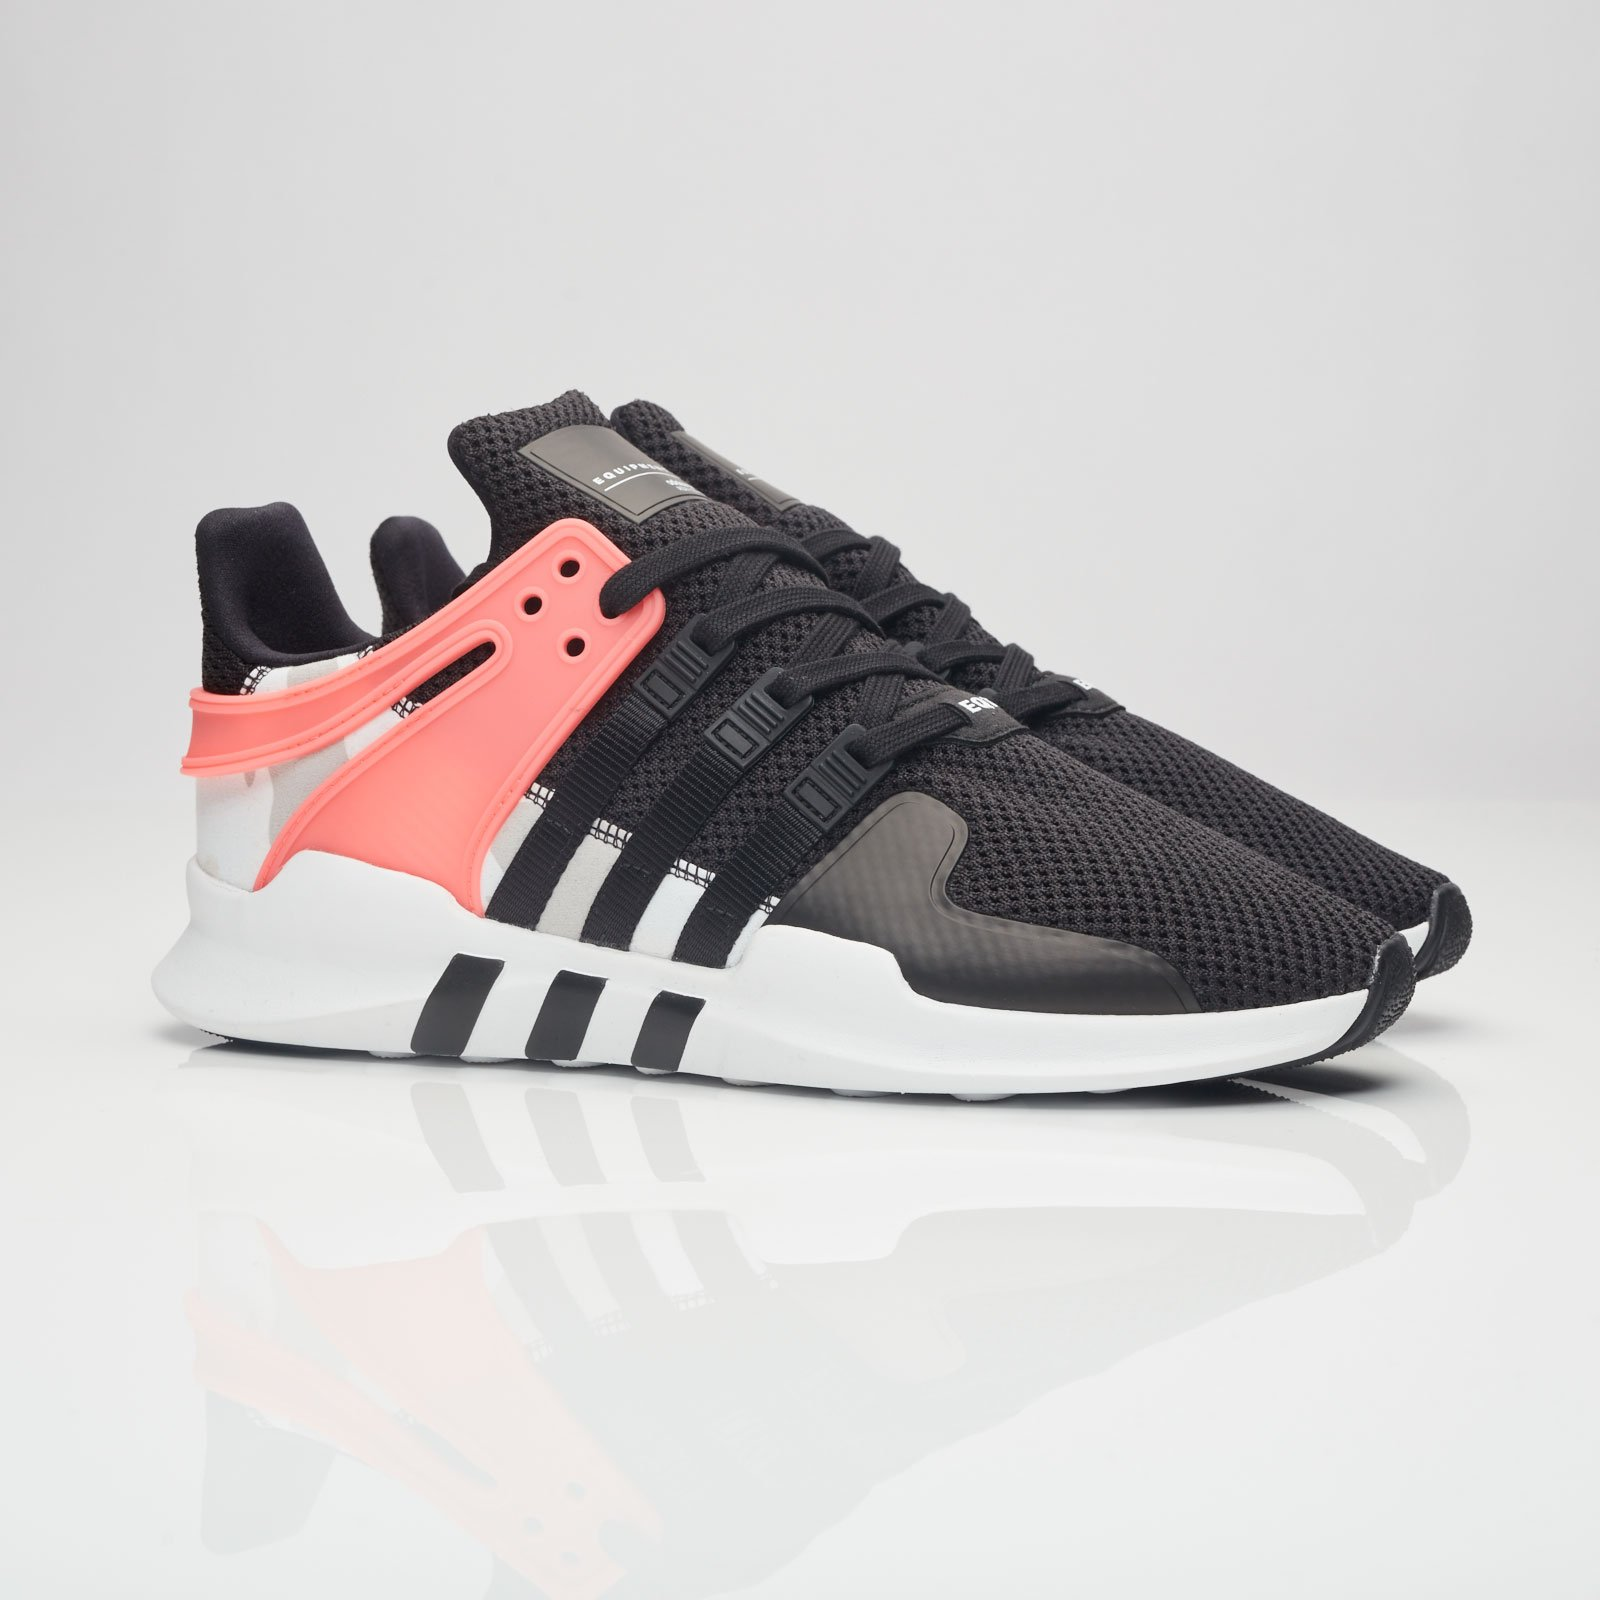 new product 759ce 401d1 adidas Originals Eqt Support Adv